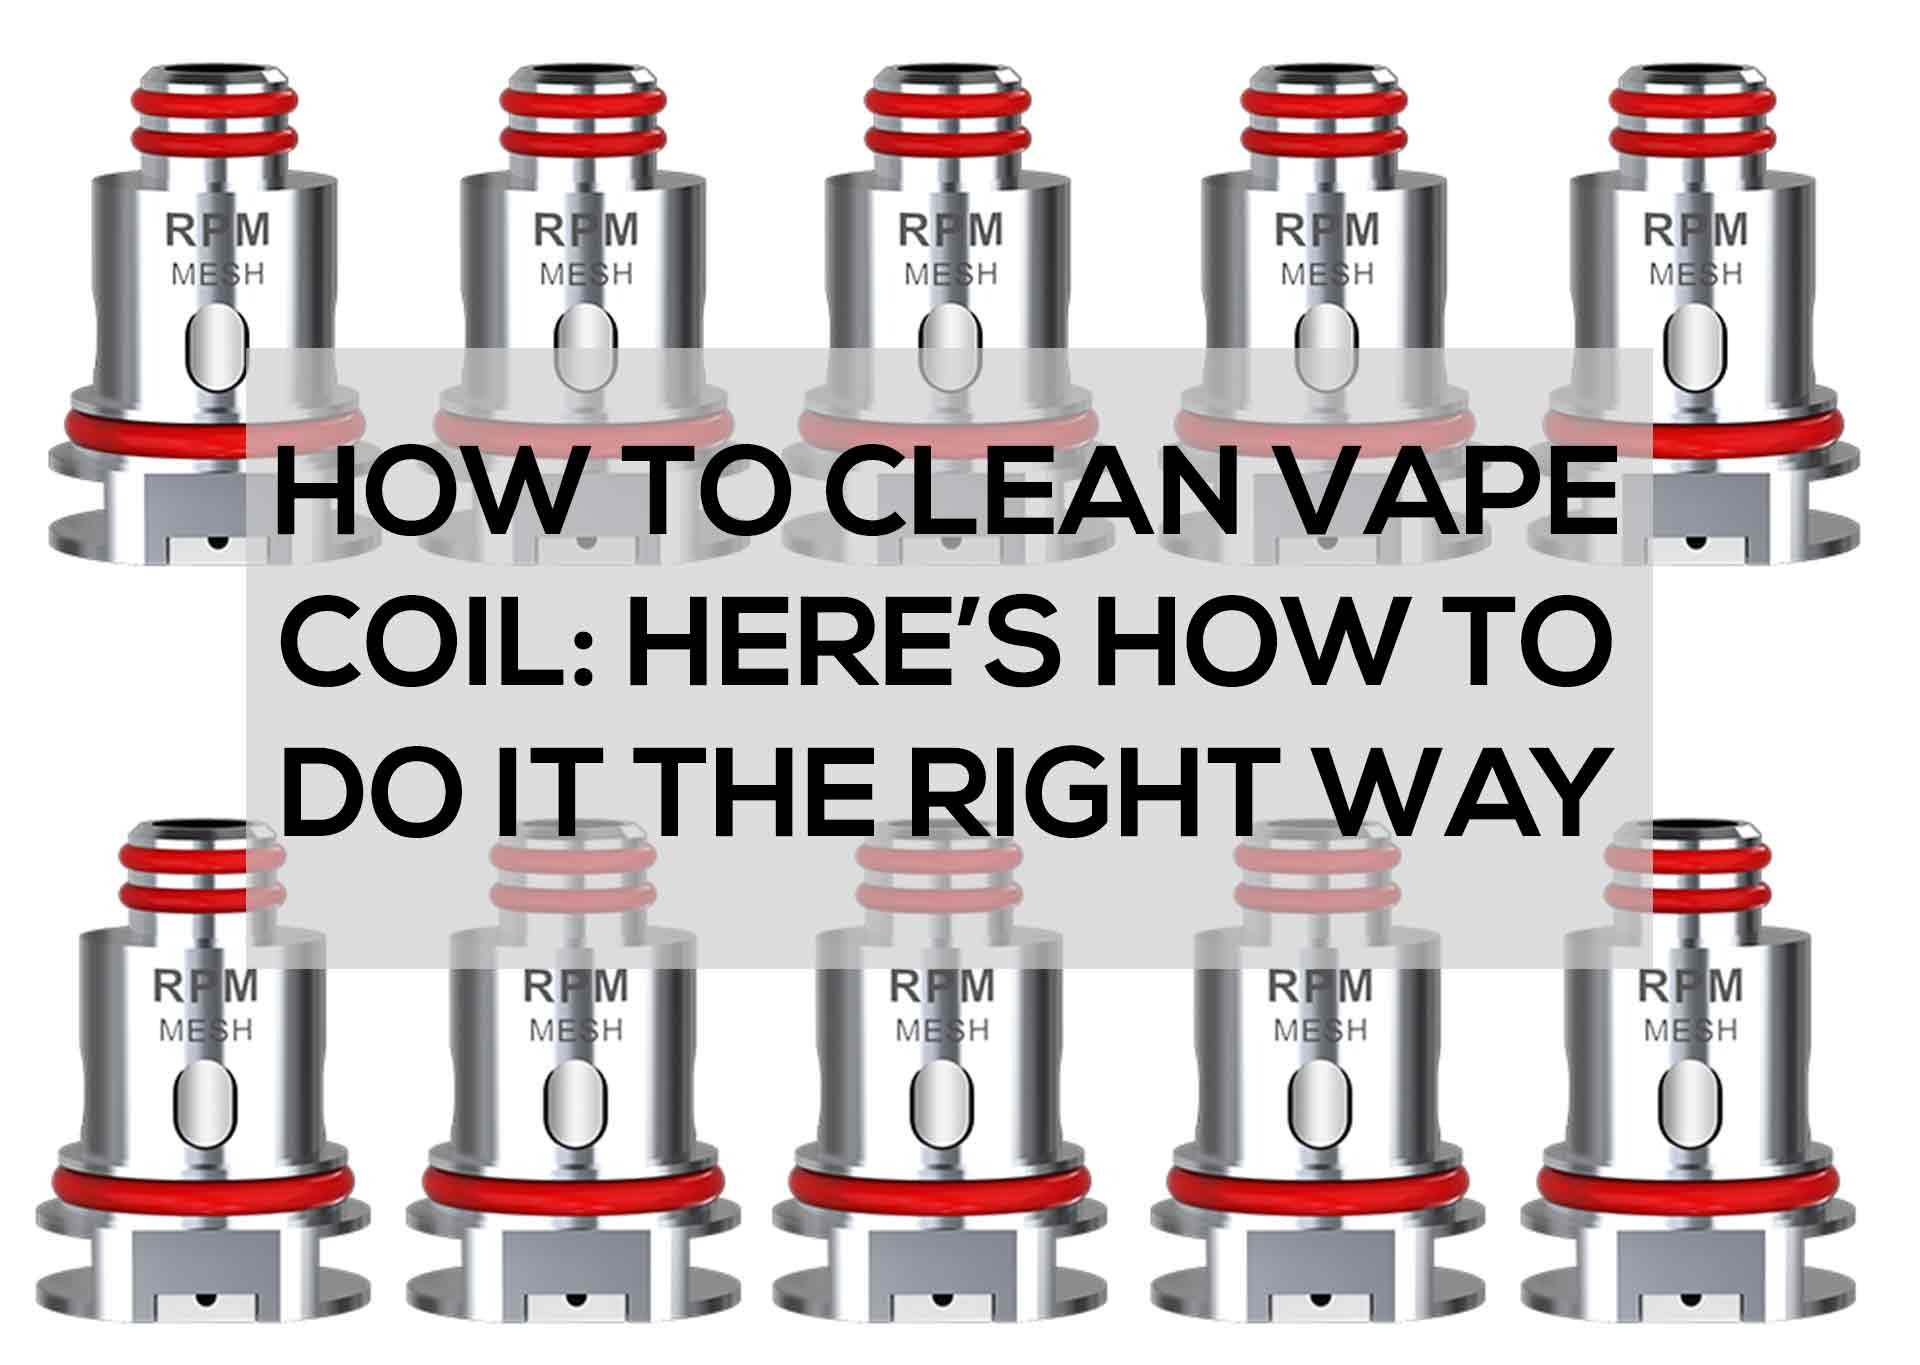 How-to-Clean-Vape-Coil--Here's-How-to-Do-it-the-Right-Way